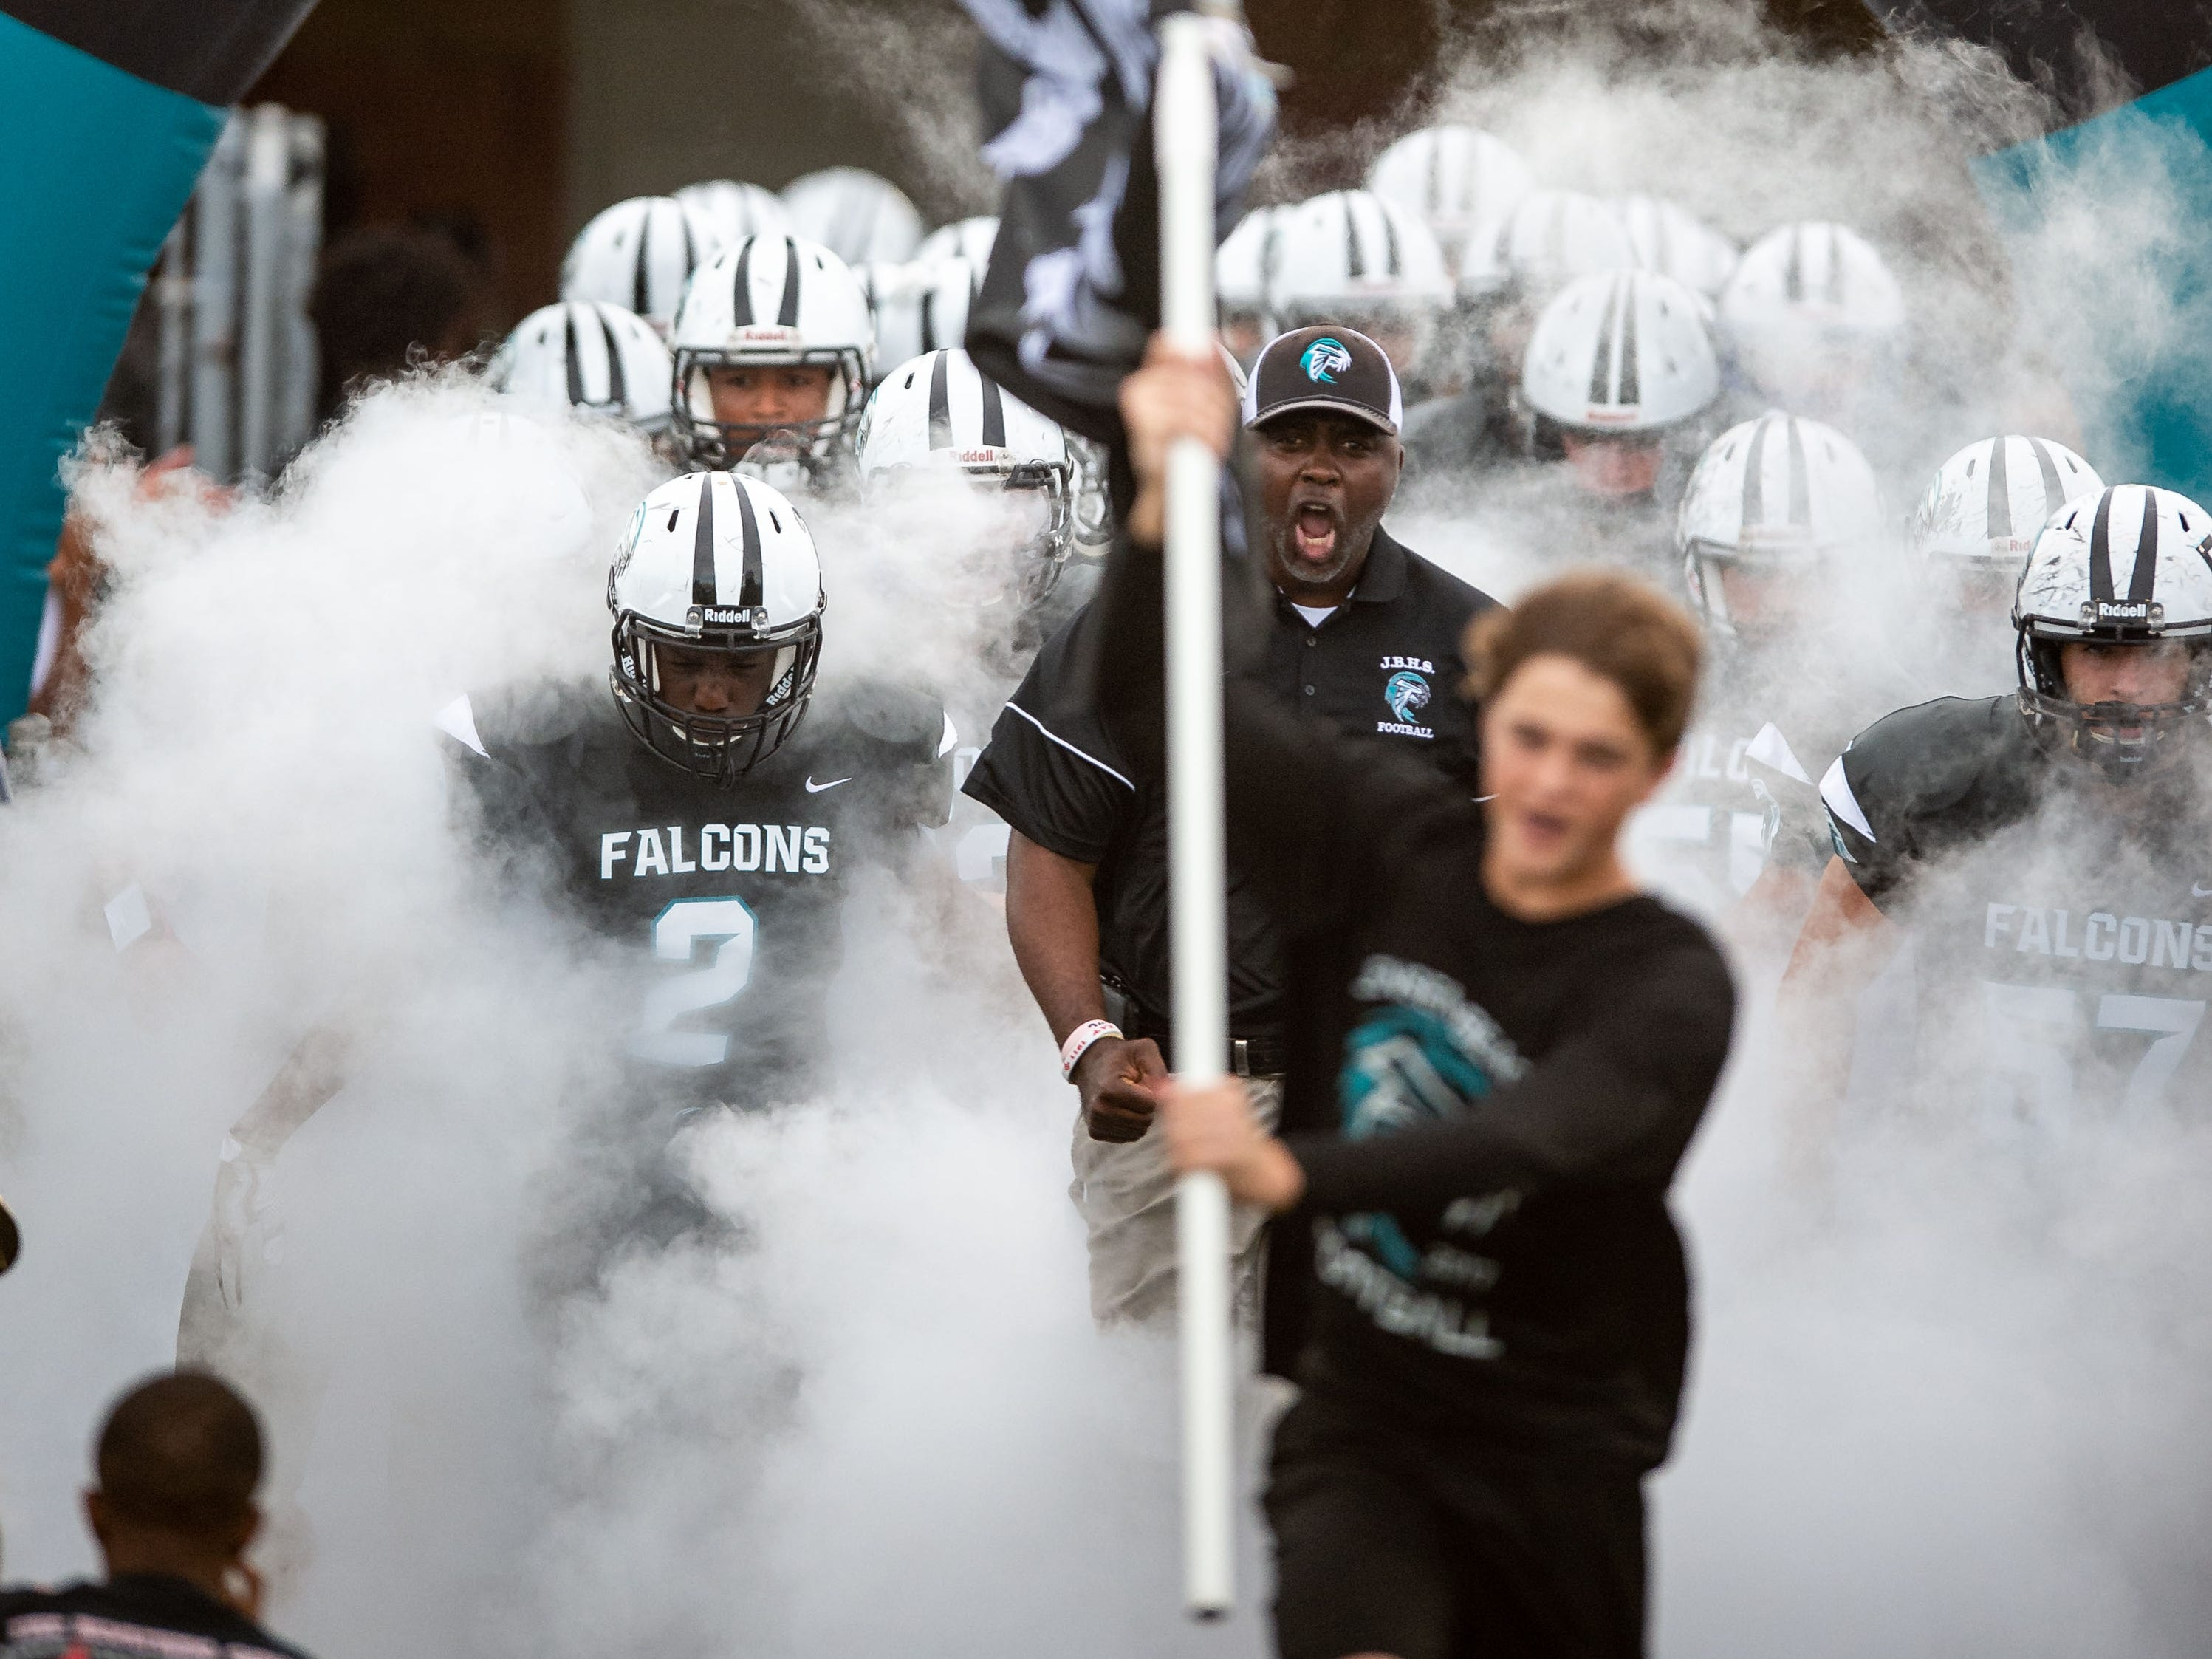 Jensen Beach head coach Tim Caffey leads his players onto the field to play South Fork during the high school football game Friday, Aug. 24, 2018, at Jensen Beach High School.